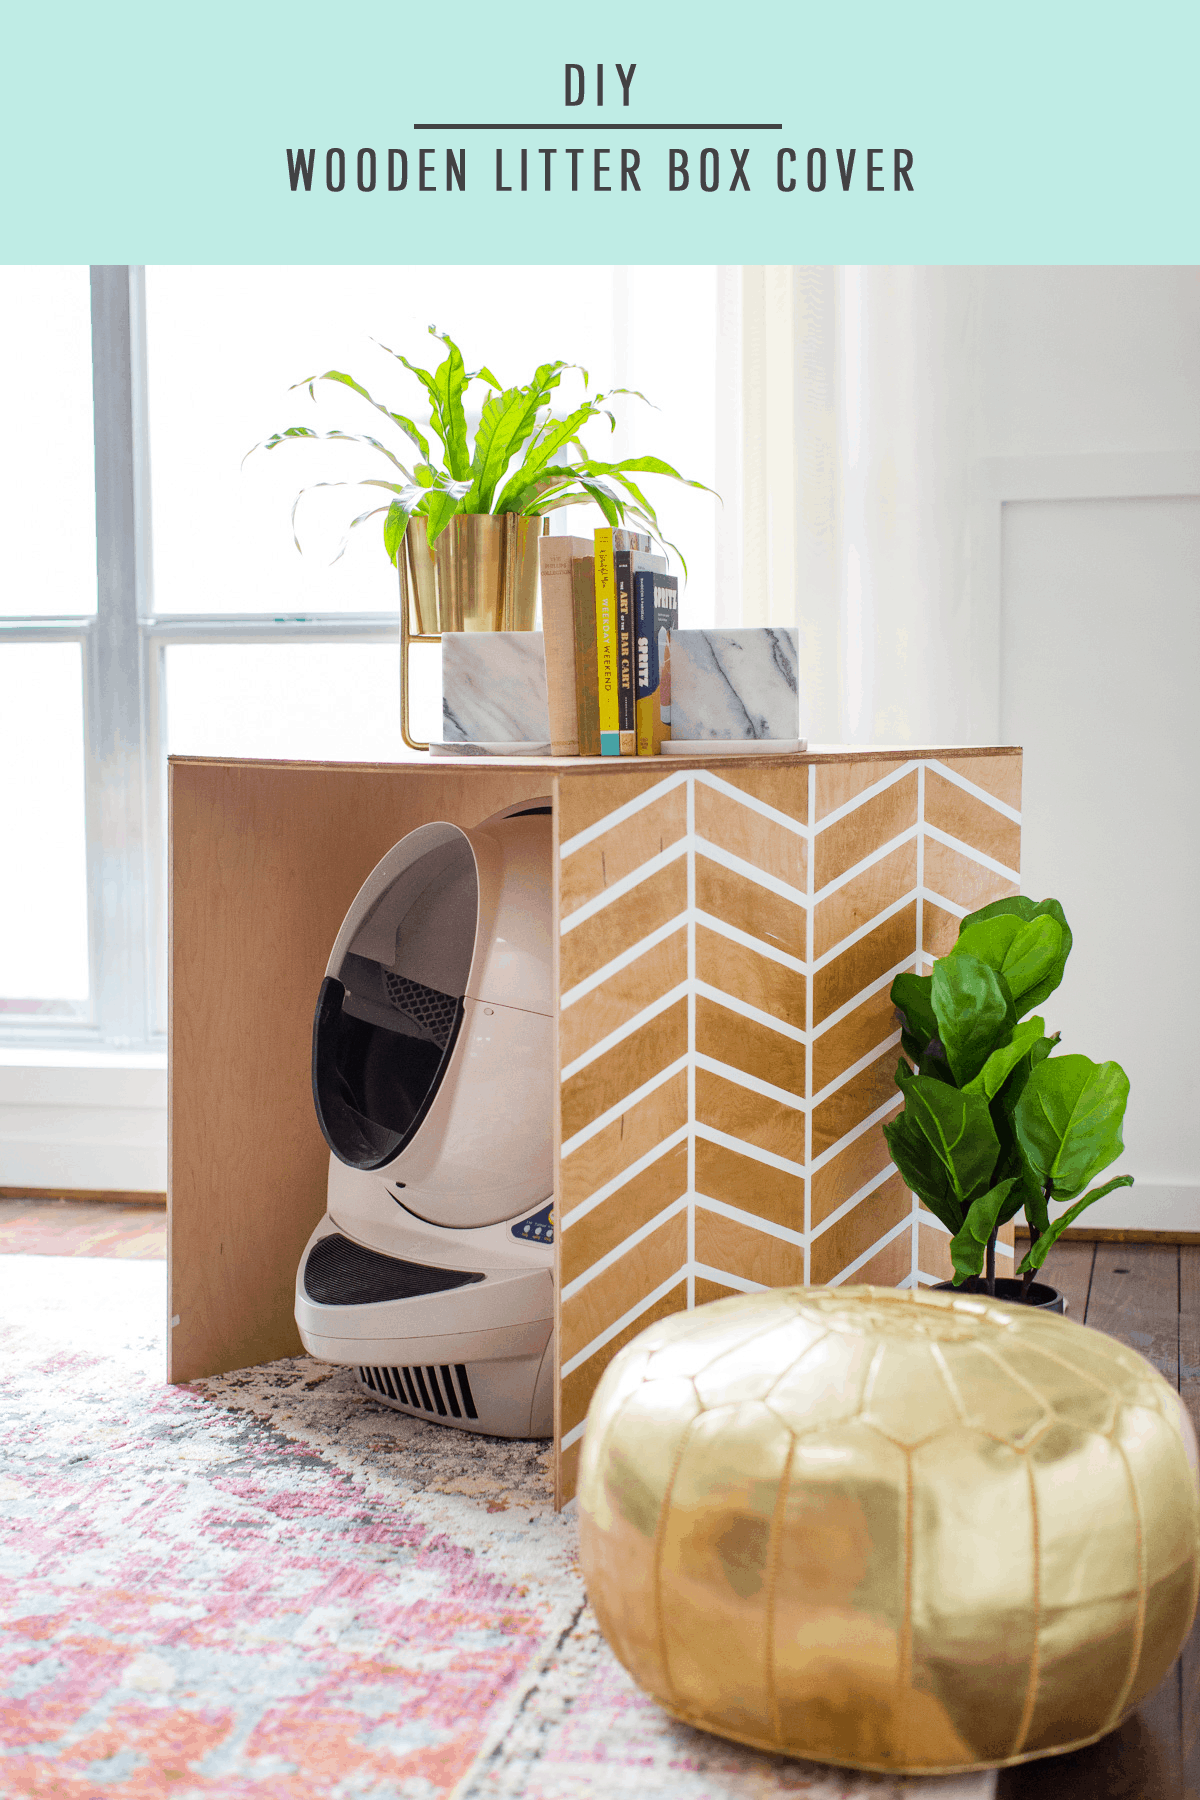 Patterned DIY Litter Box Cover by Top Houston Blogger Ashley Rose of Sugar & Cloth